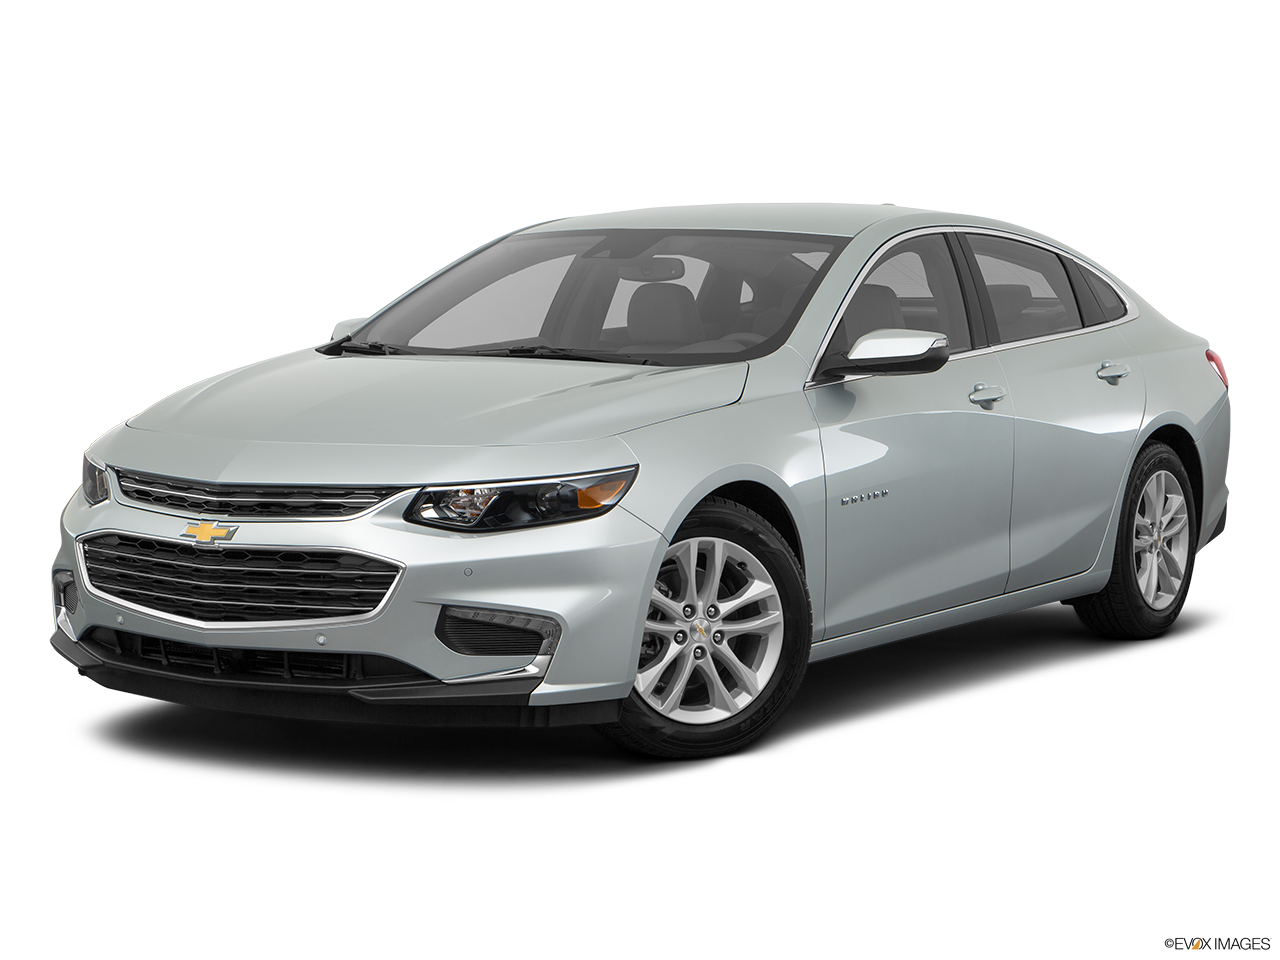 test drive a 2017 chevrolet malibu at champion chevrolet in reno. Cars Review. Best American Auto & Cars Review